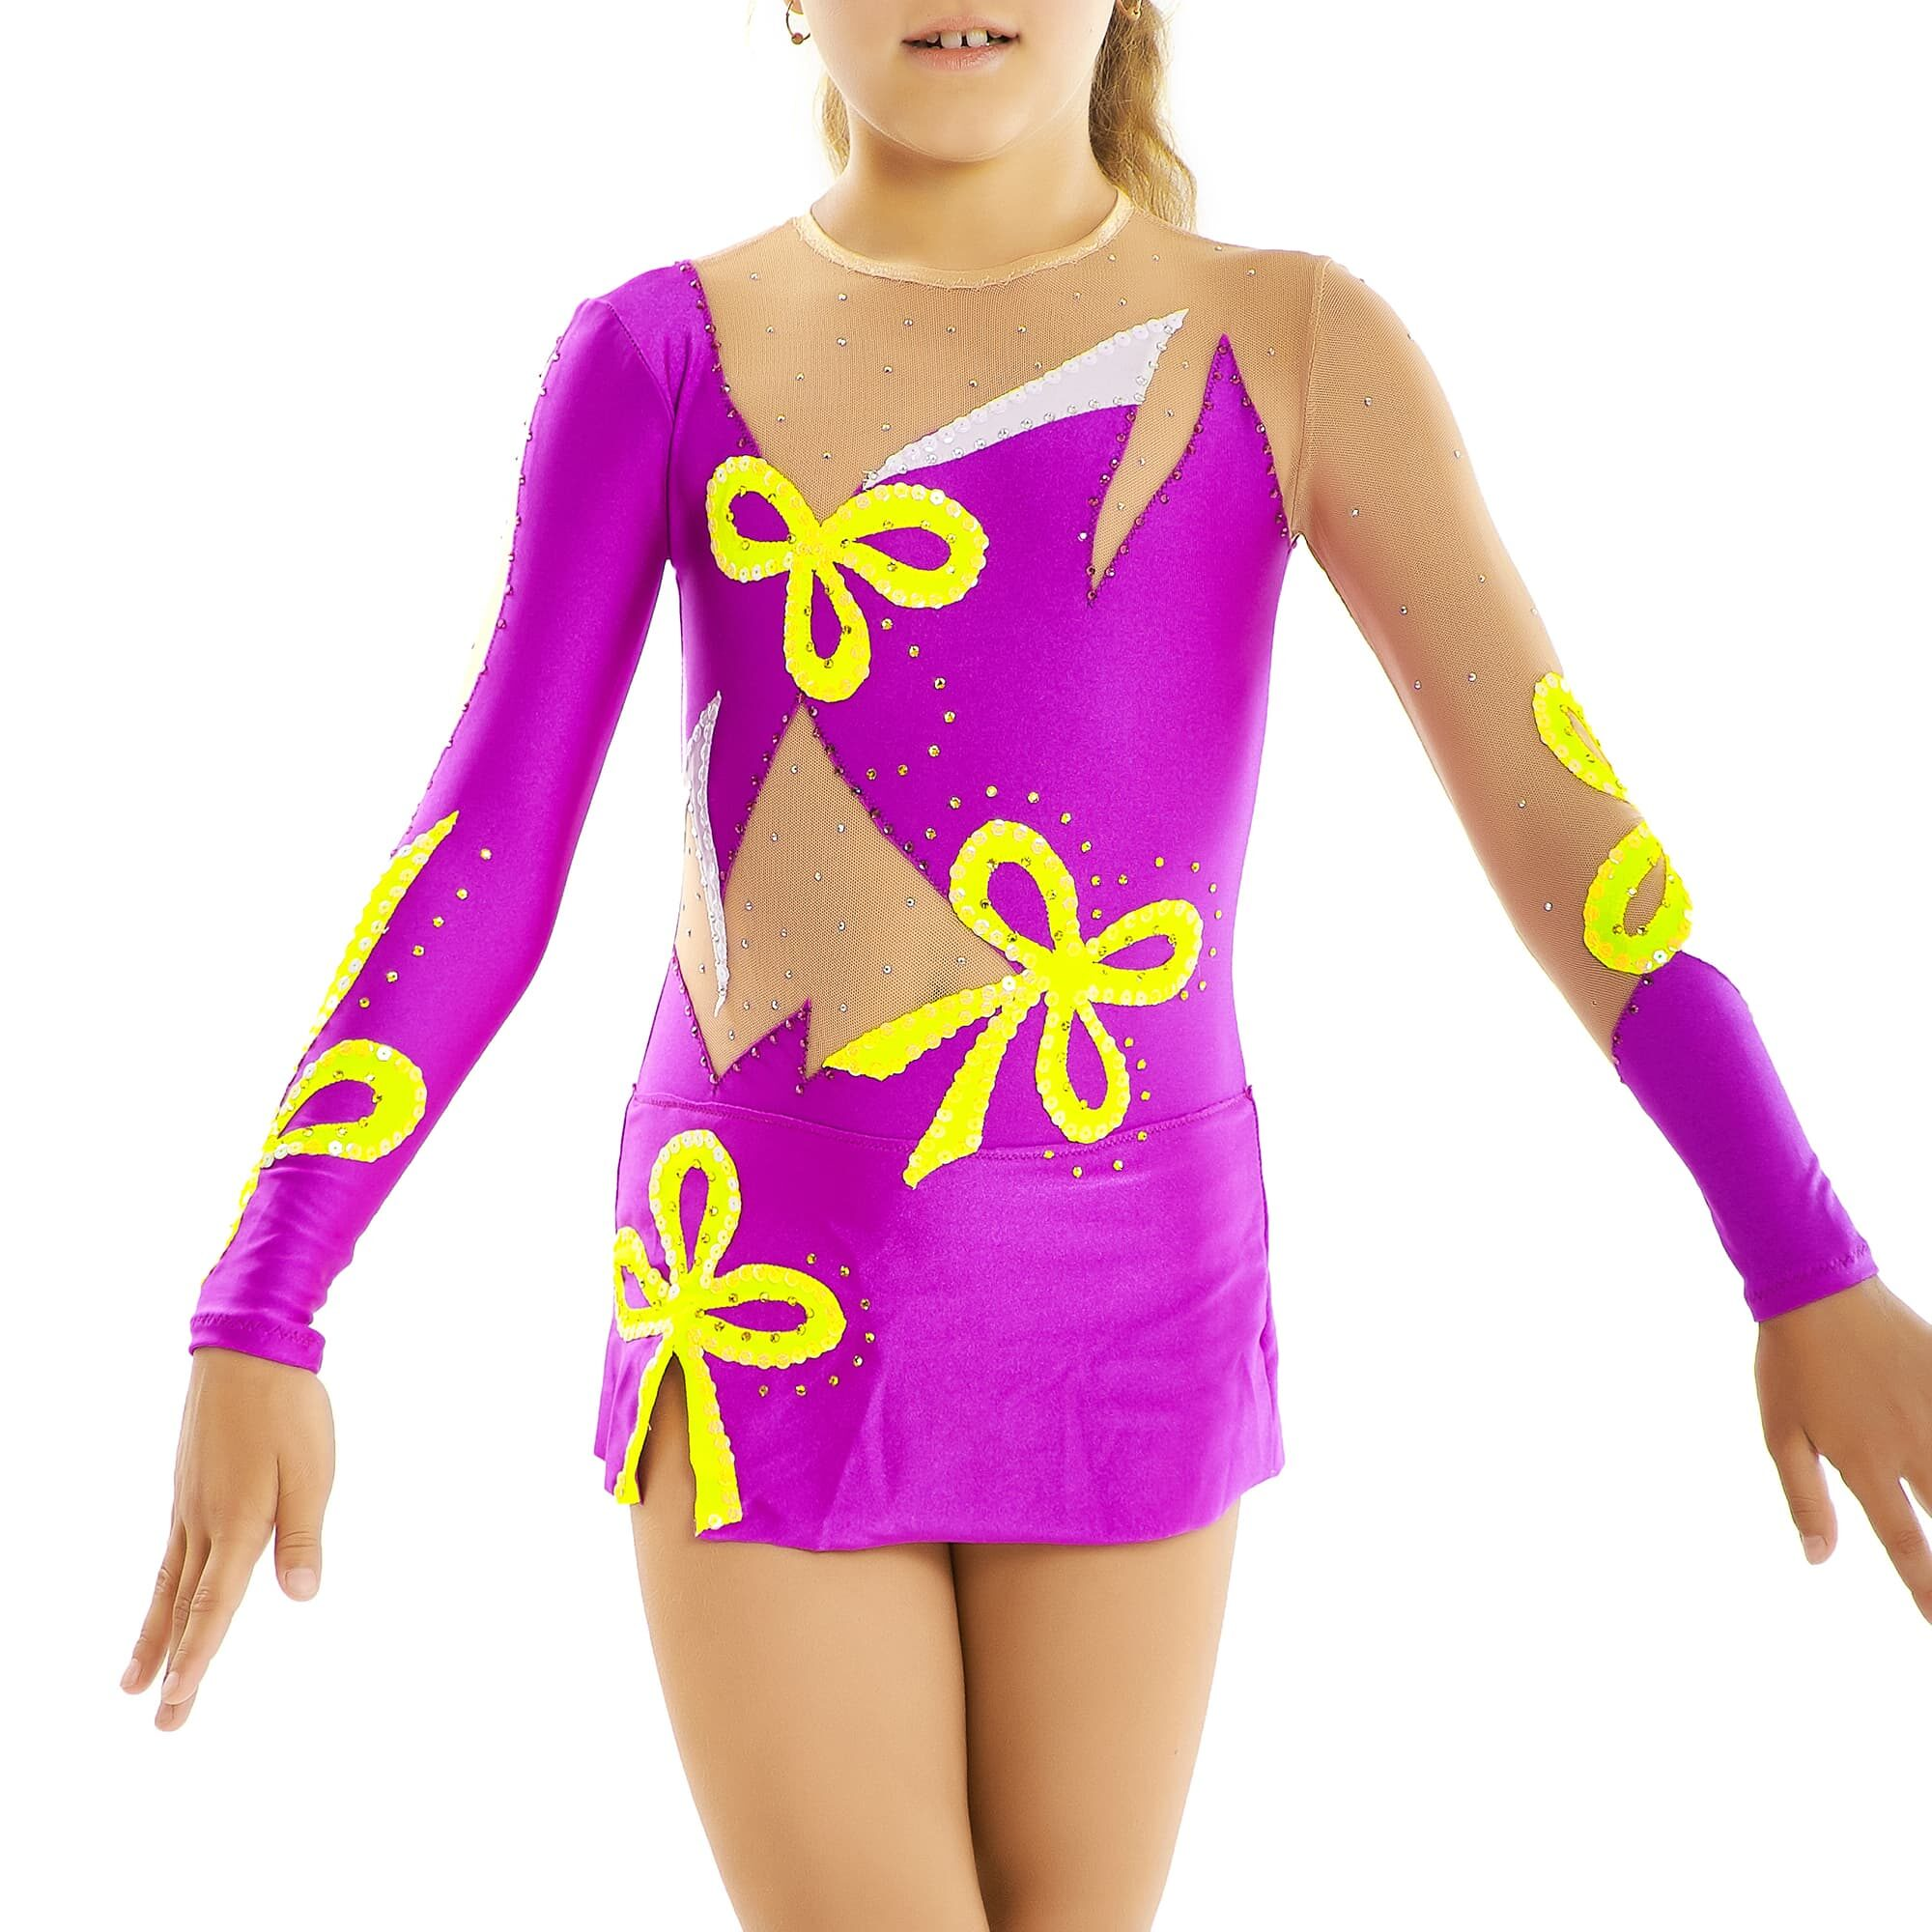 Rhythmic Gymnastics Leotard 20 for competitions